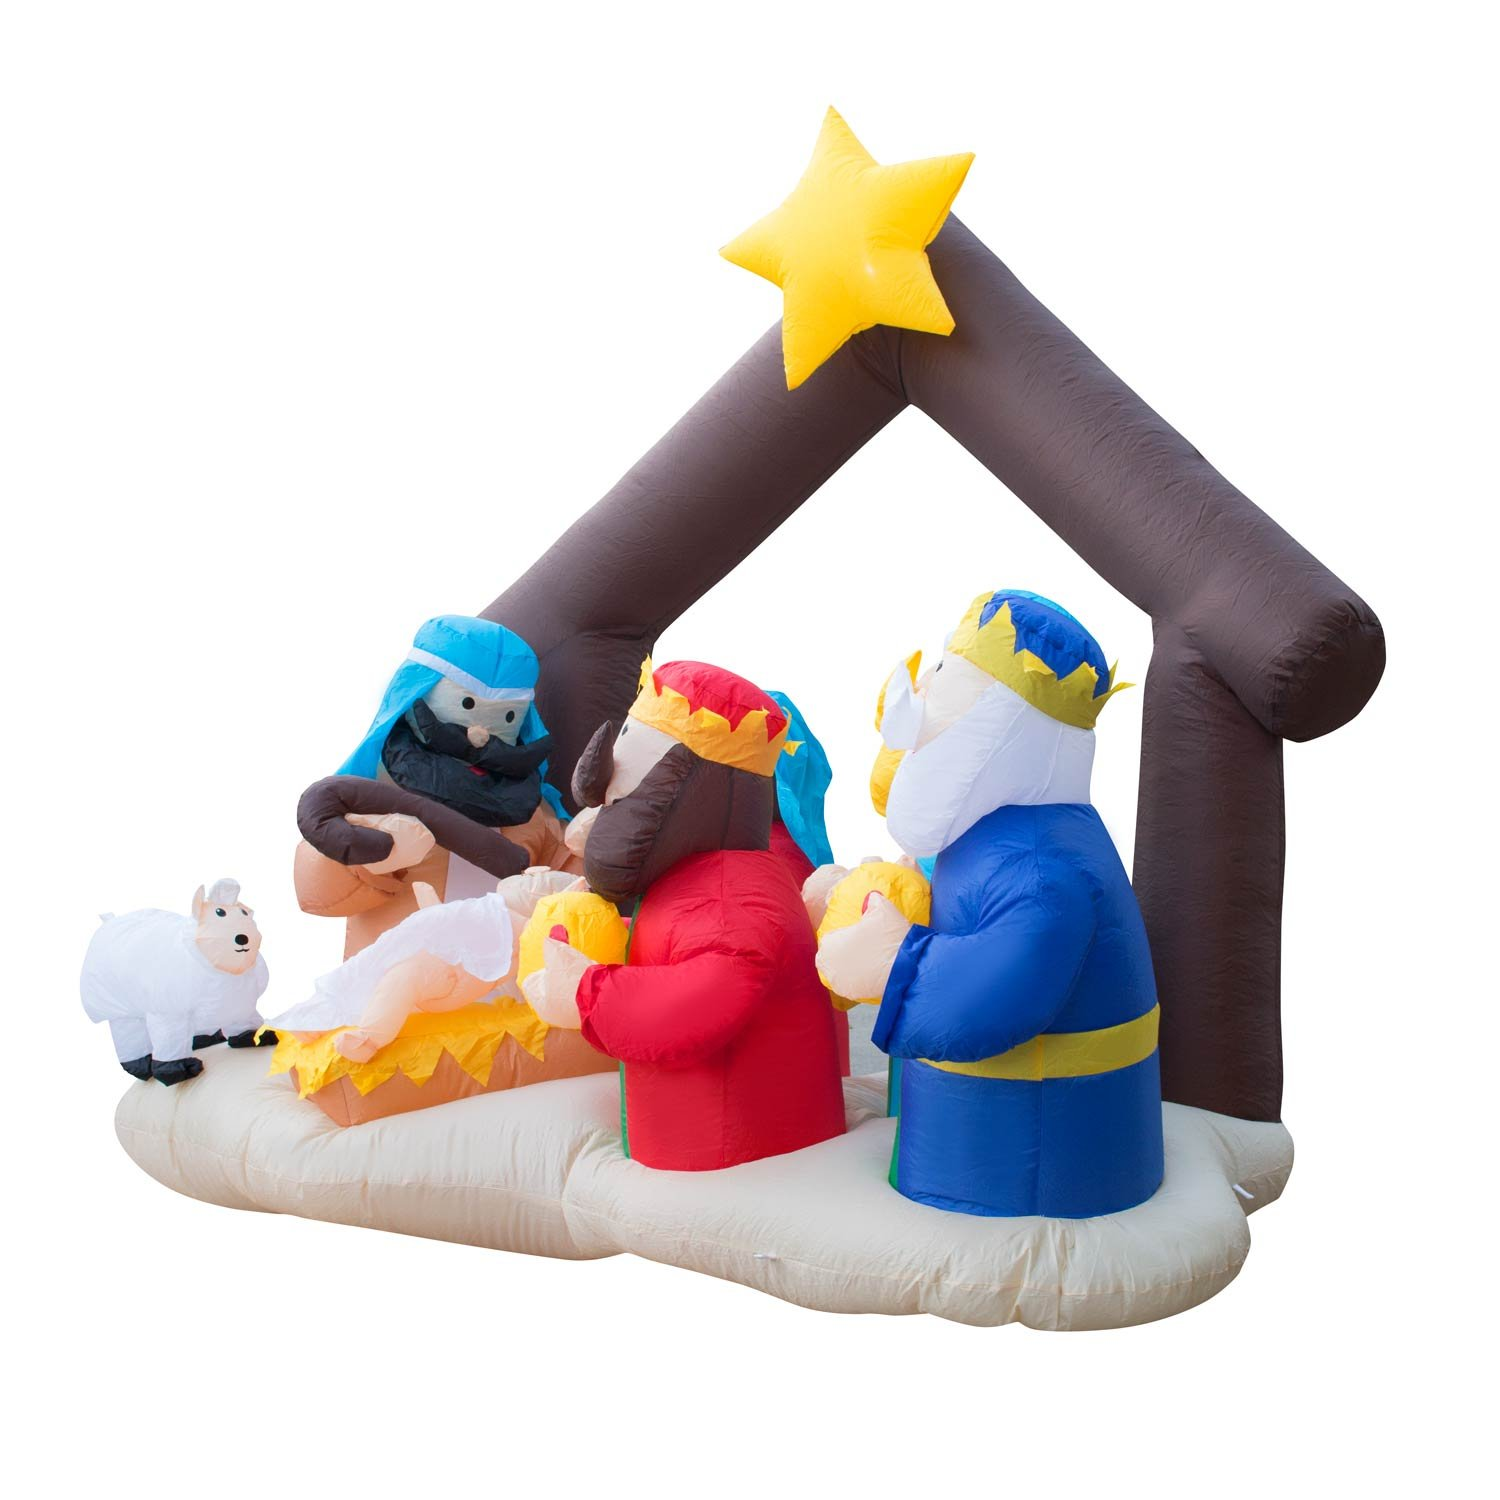 Holidayana Christmas Inflatable Giant 6.5 Ft. Nativity Scene Inflatable Featuring Lighted Interior / Airblown Inflatable Christmas Decoration With Built In Fan And Anchor Ropes by Holidayana (Image #2)